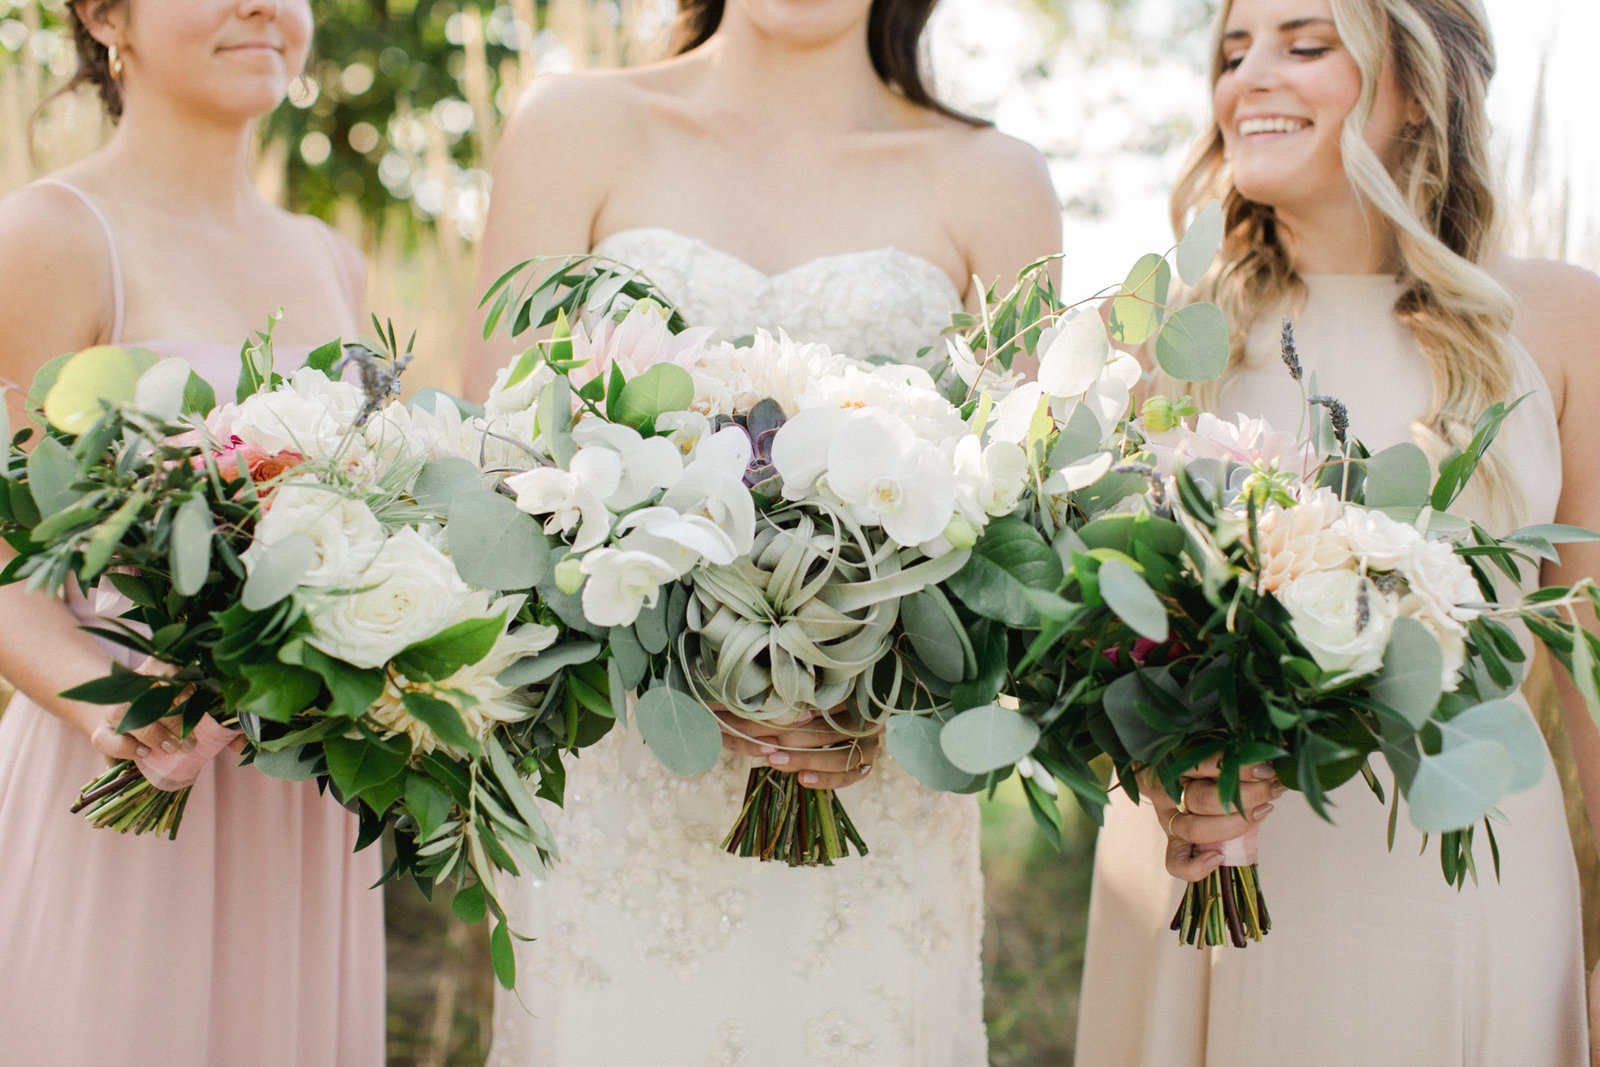 Saltwater Farm Vineyard Wedding_Blush Bridesmaids 6